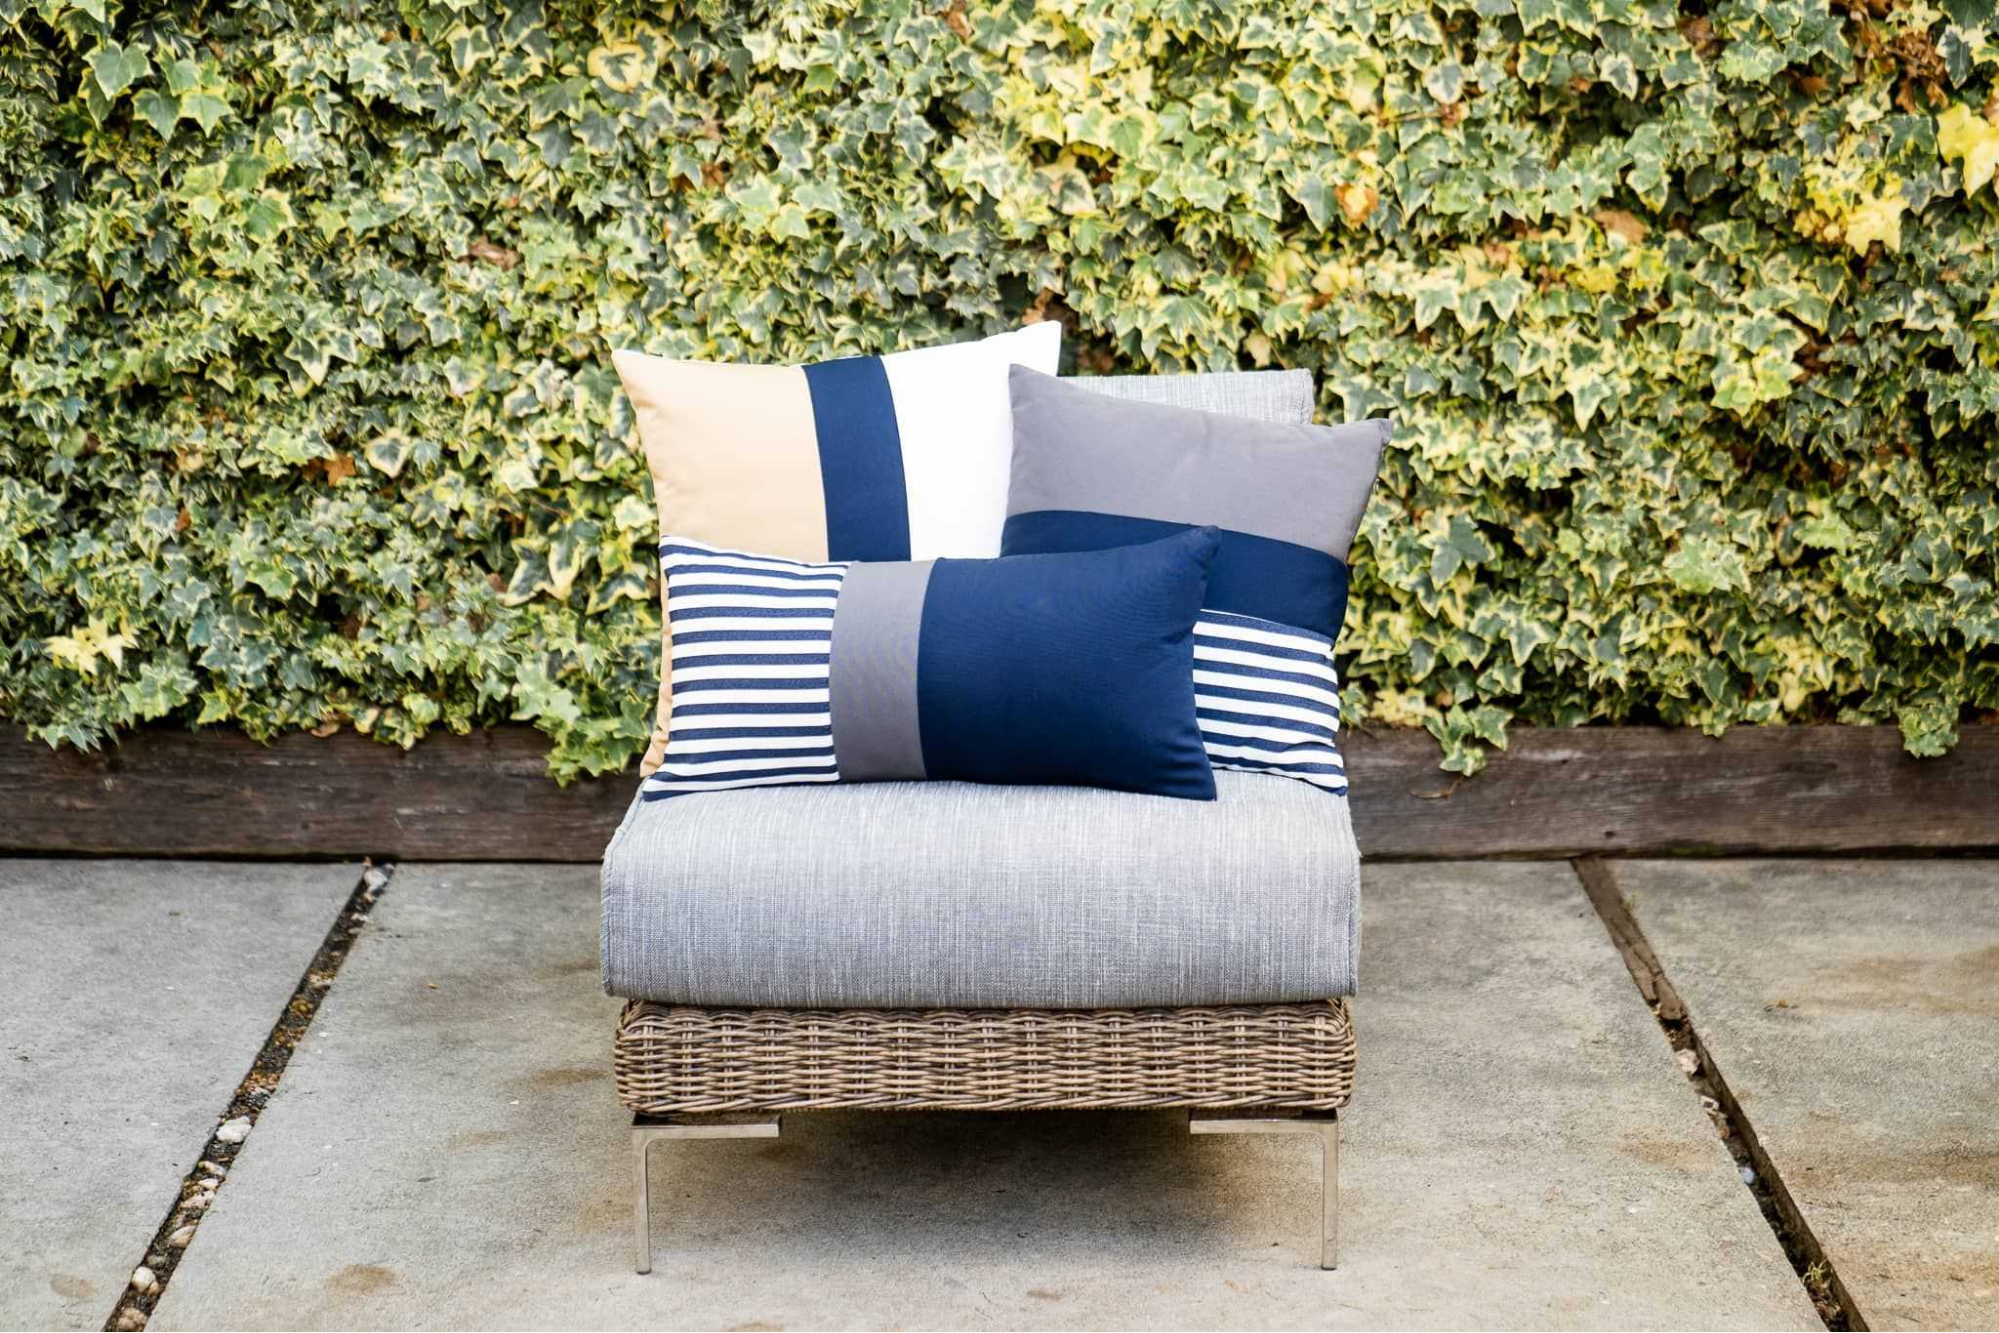 outdoor cushions on a wicker chair